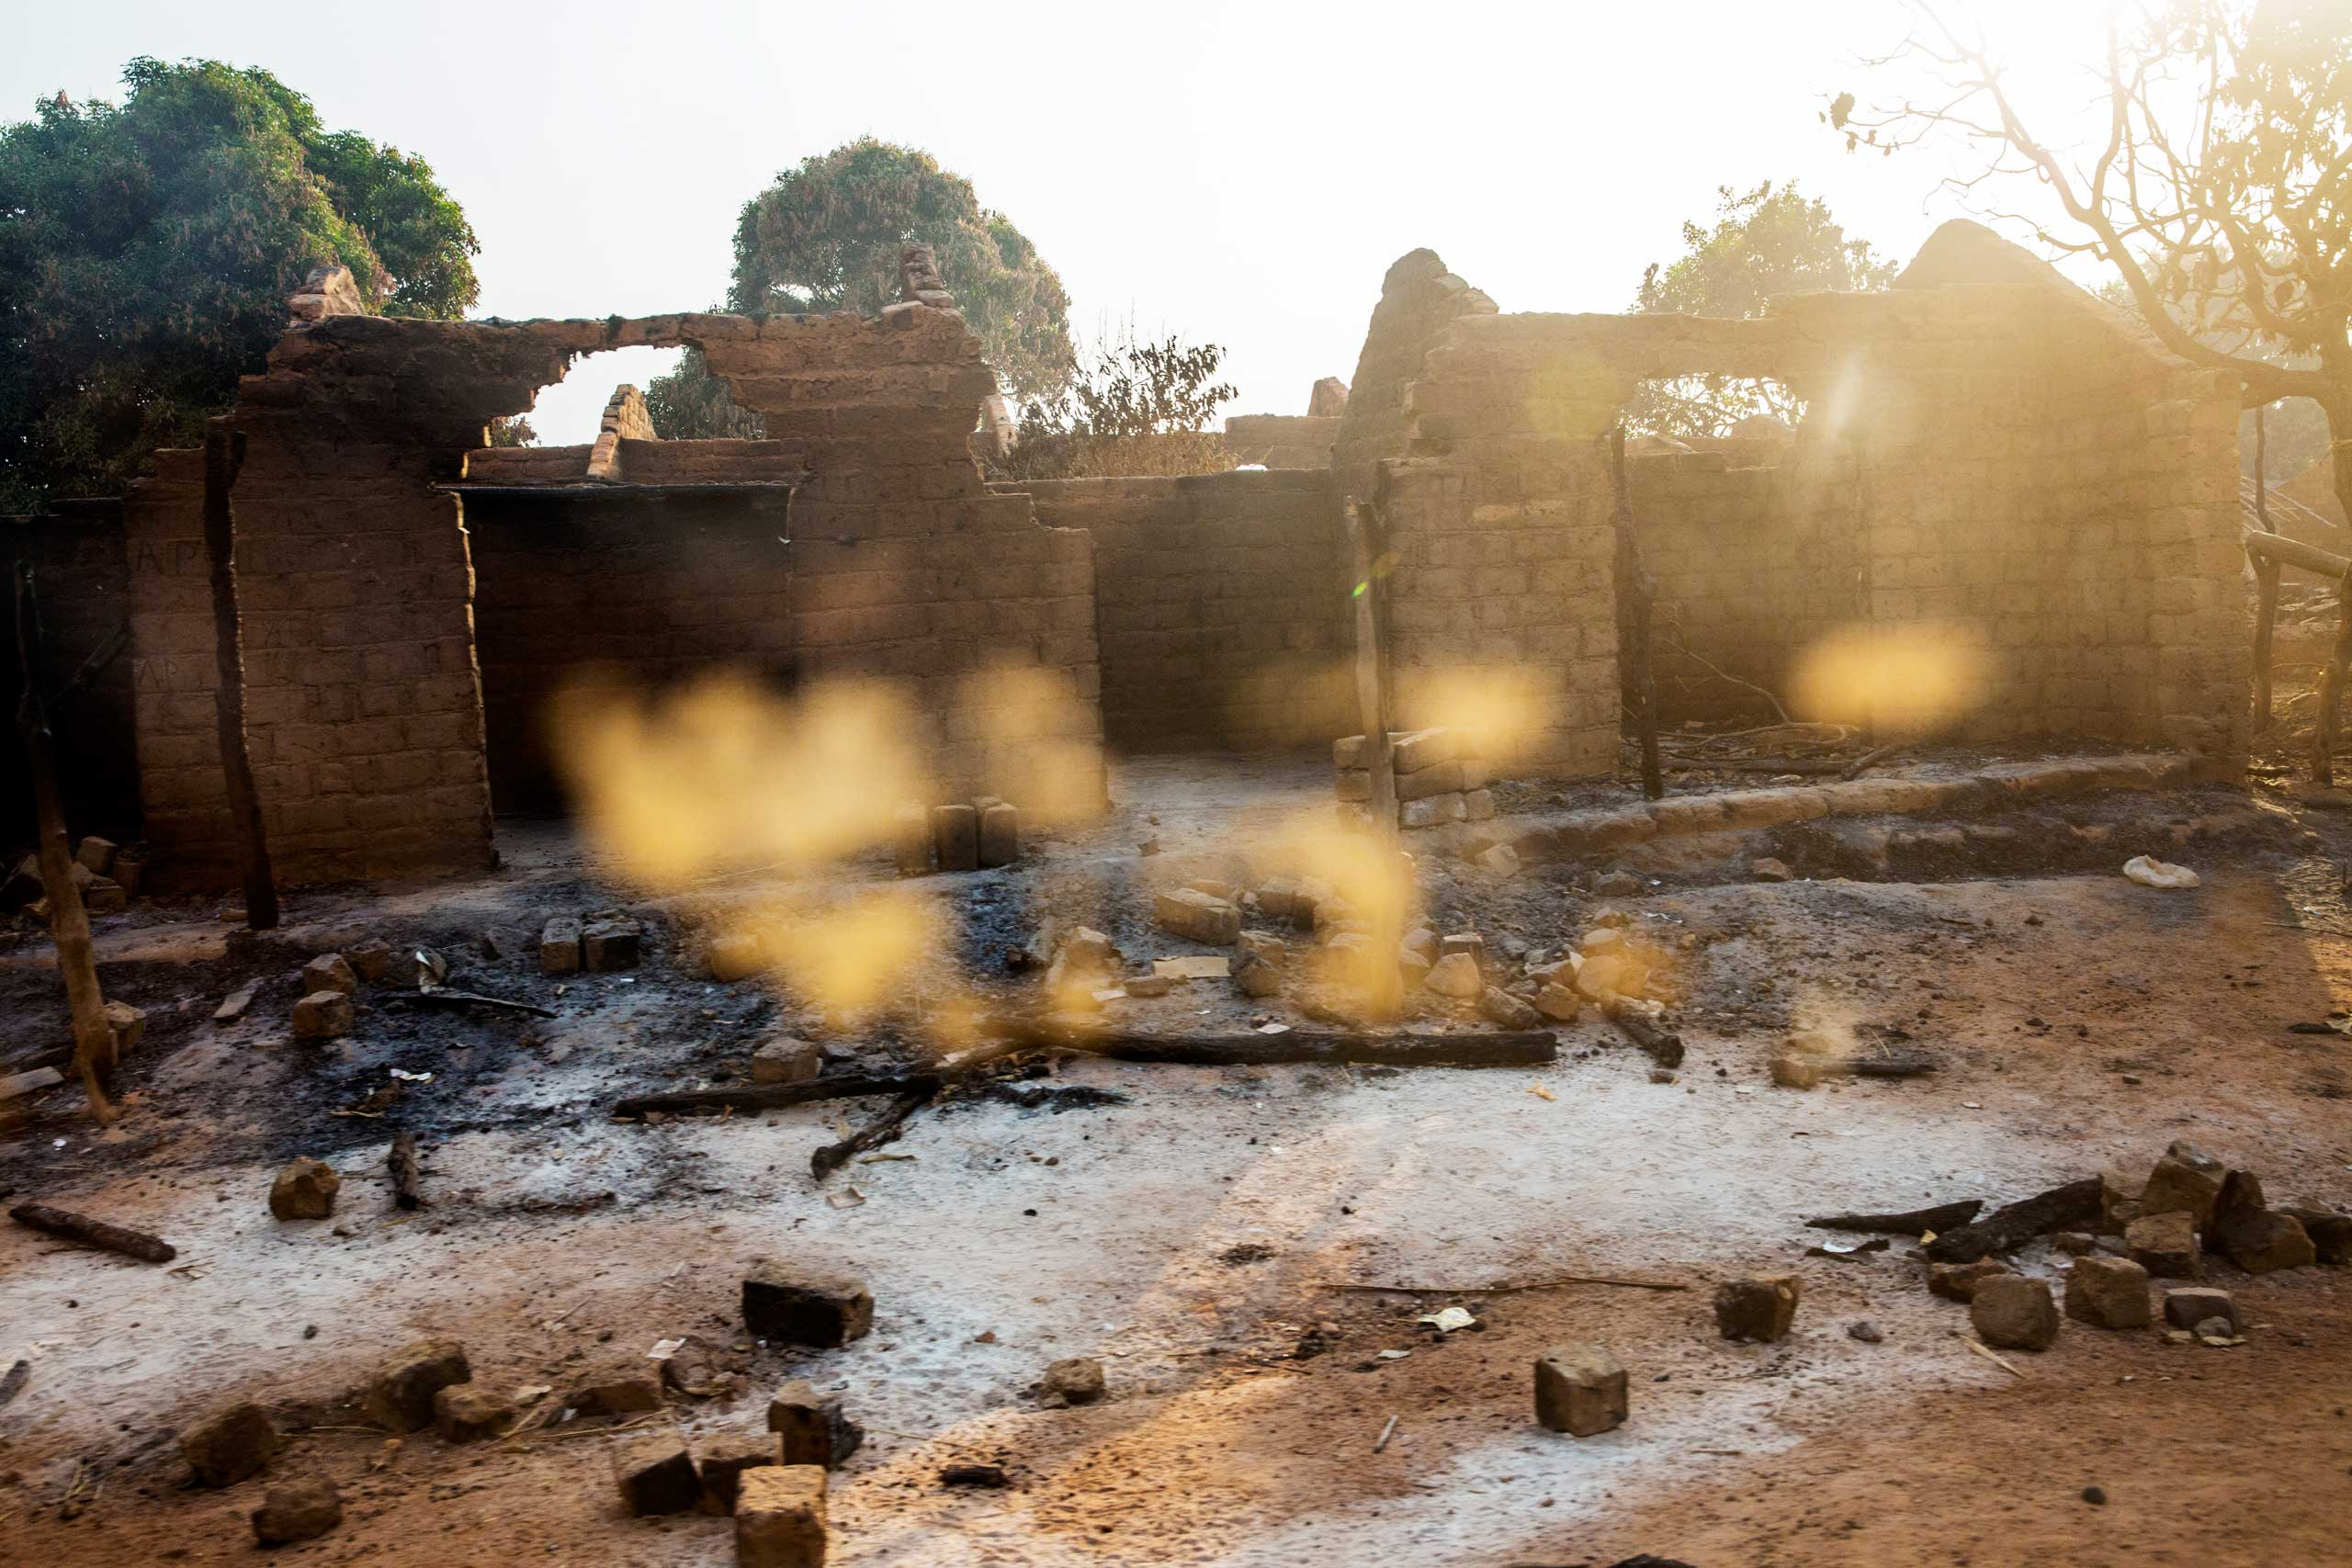 The remains of houses burnt by Seleka forces, between Bozoum and Bossemptele. Central African Republic. Jan. 30, 2014.